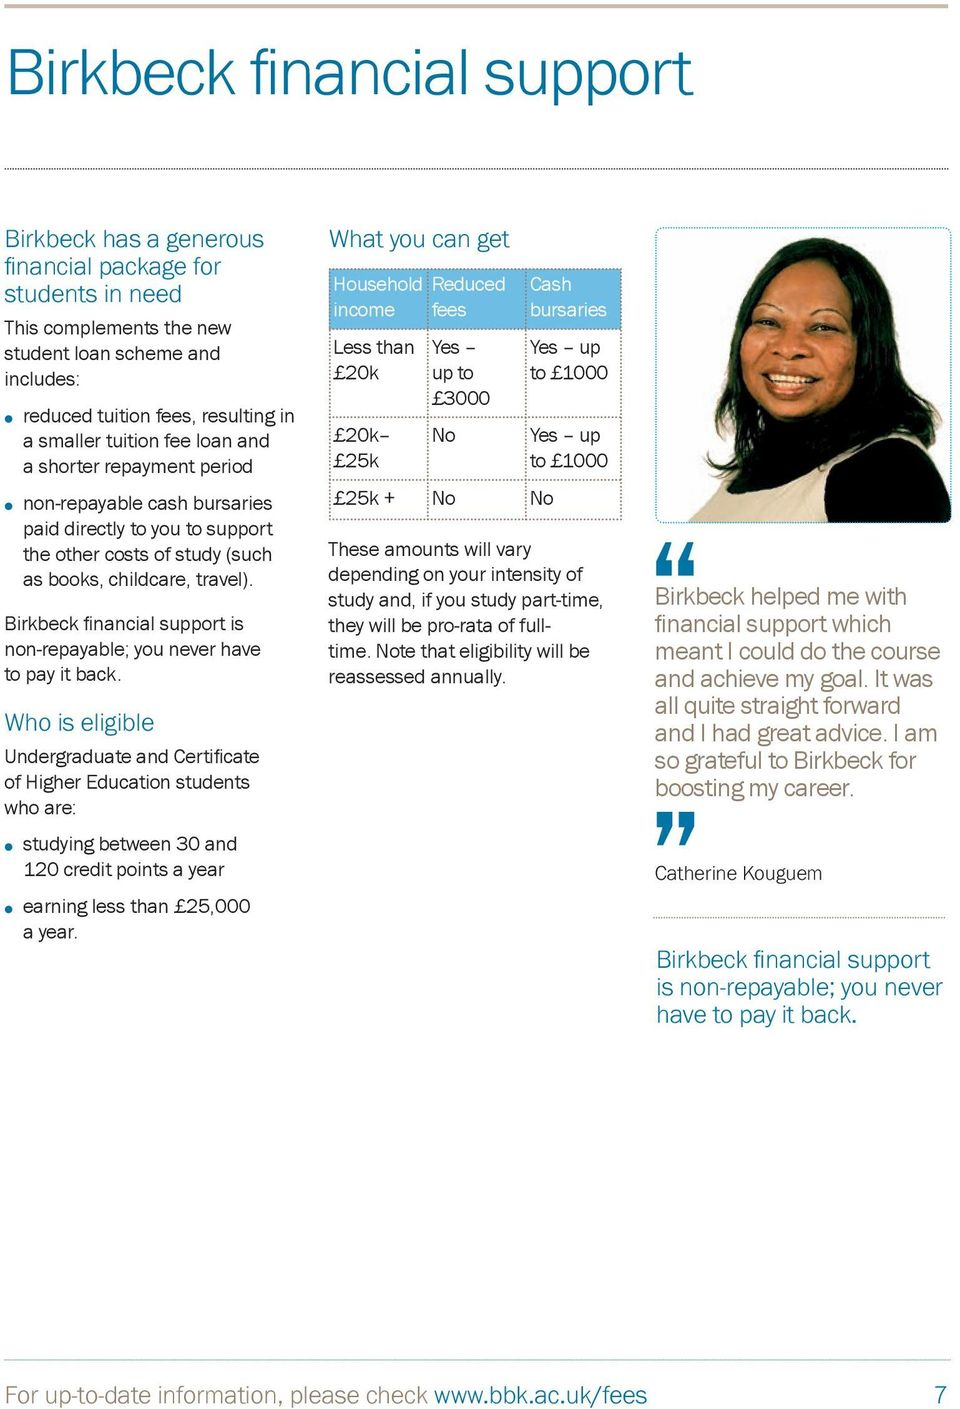 Birkbeck financial support is non-repayable; you never have to pay it back.